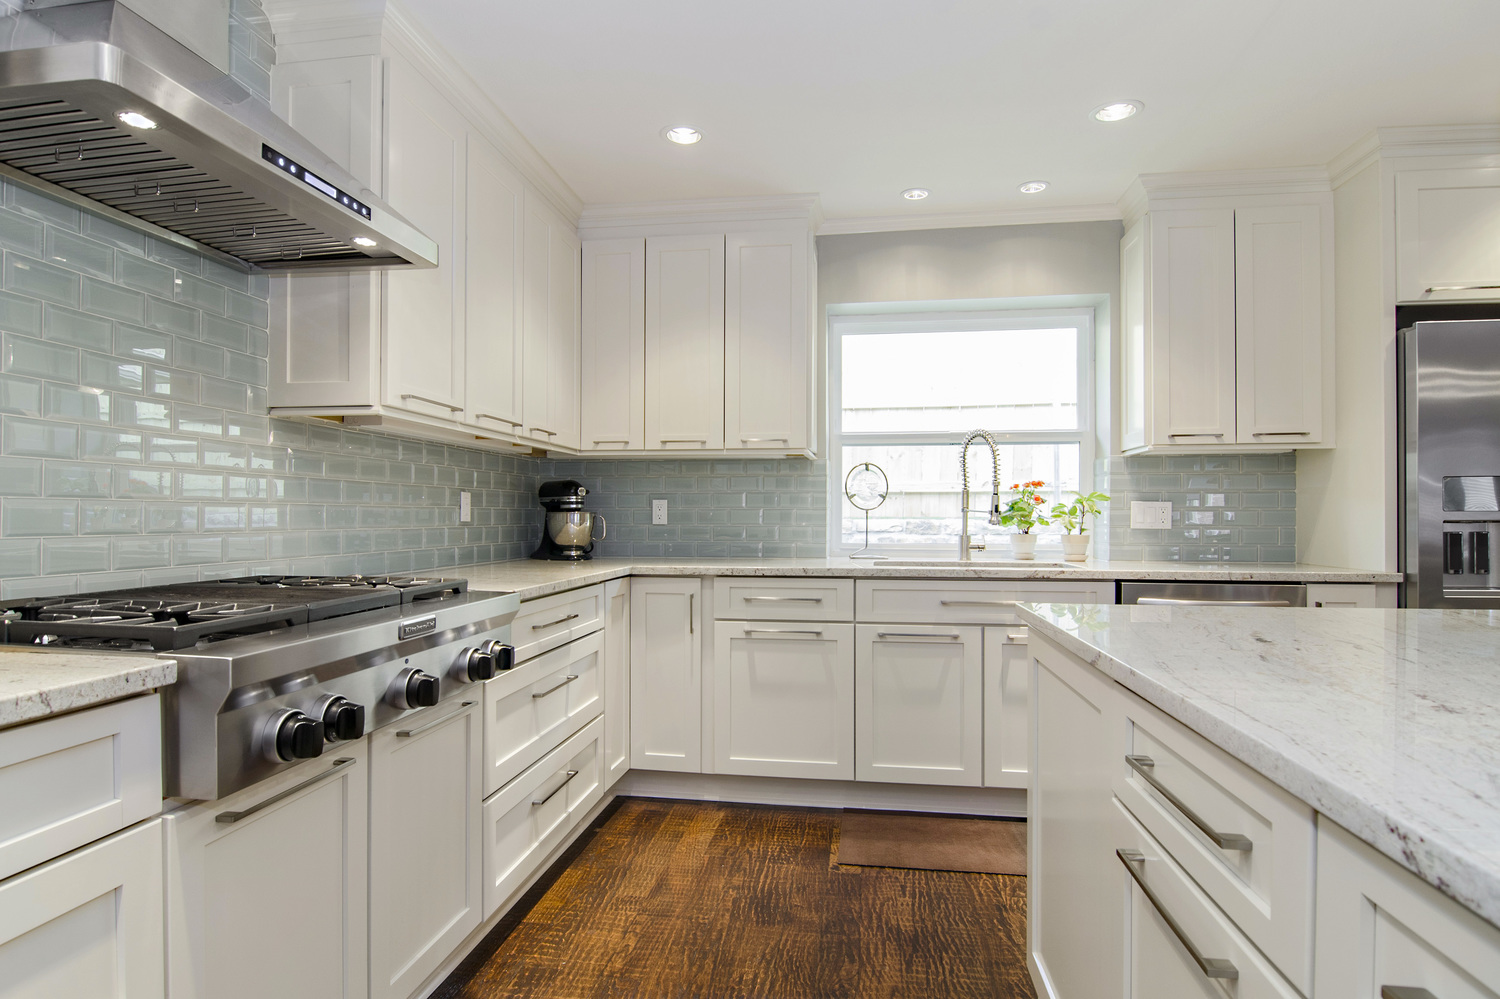 Backsplash White Cabinets What Color Subway Tile With Oak Cabinets What Color Subway